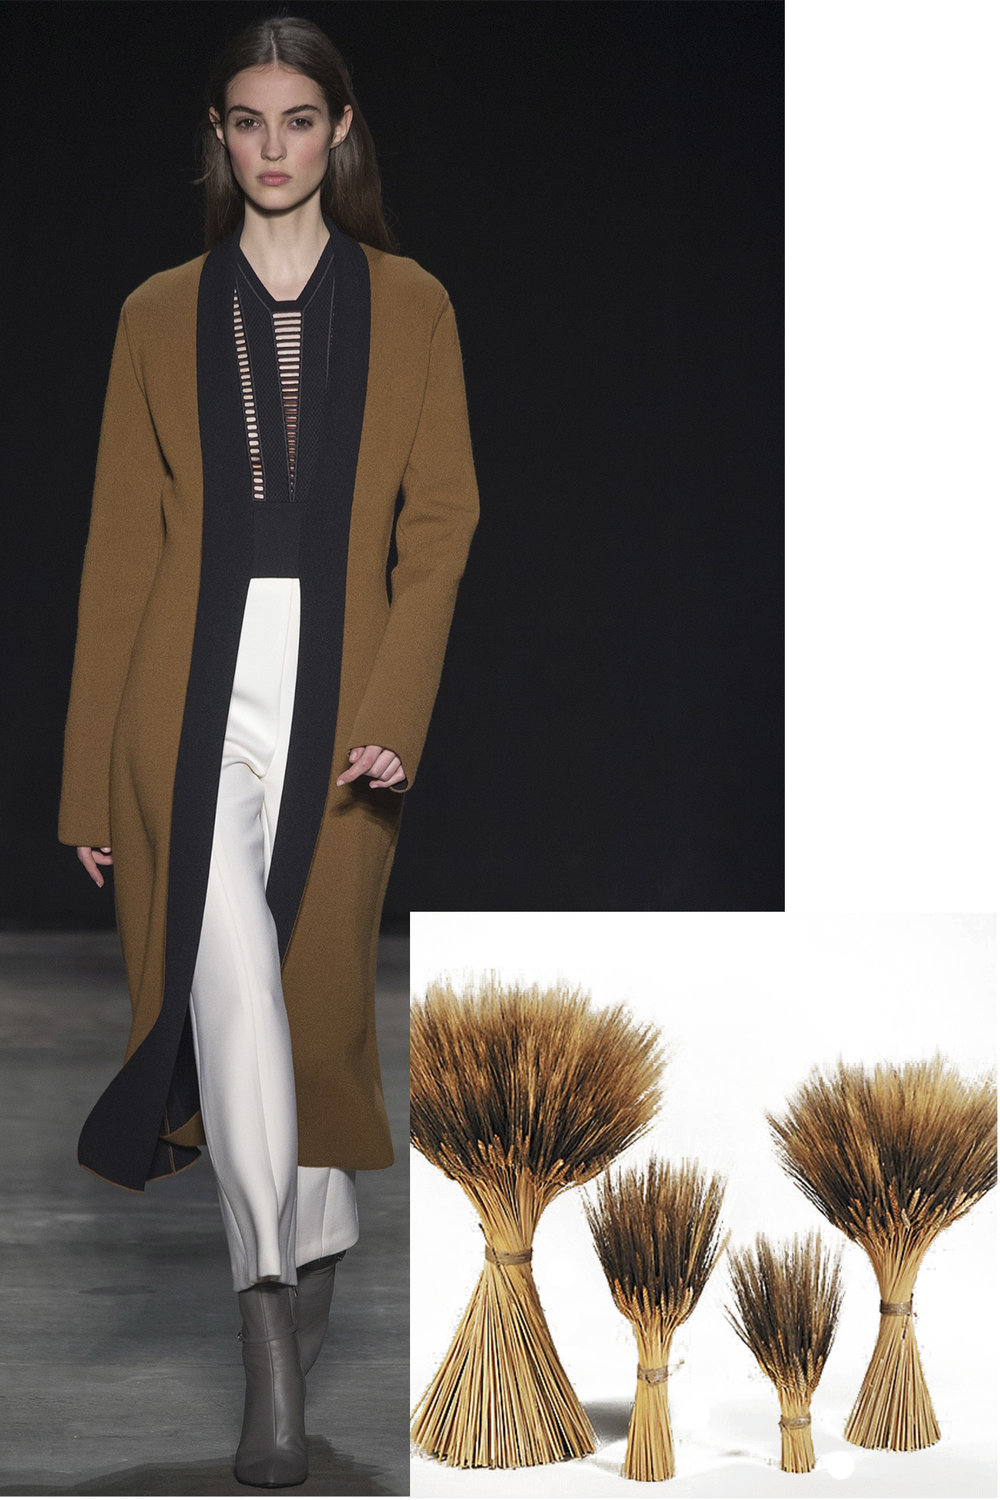 Narciso Rodriguez paired with Bear Wheat Grass